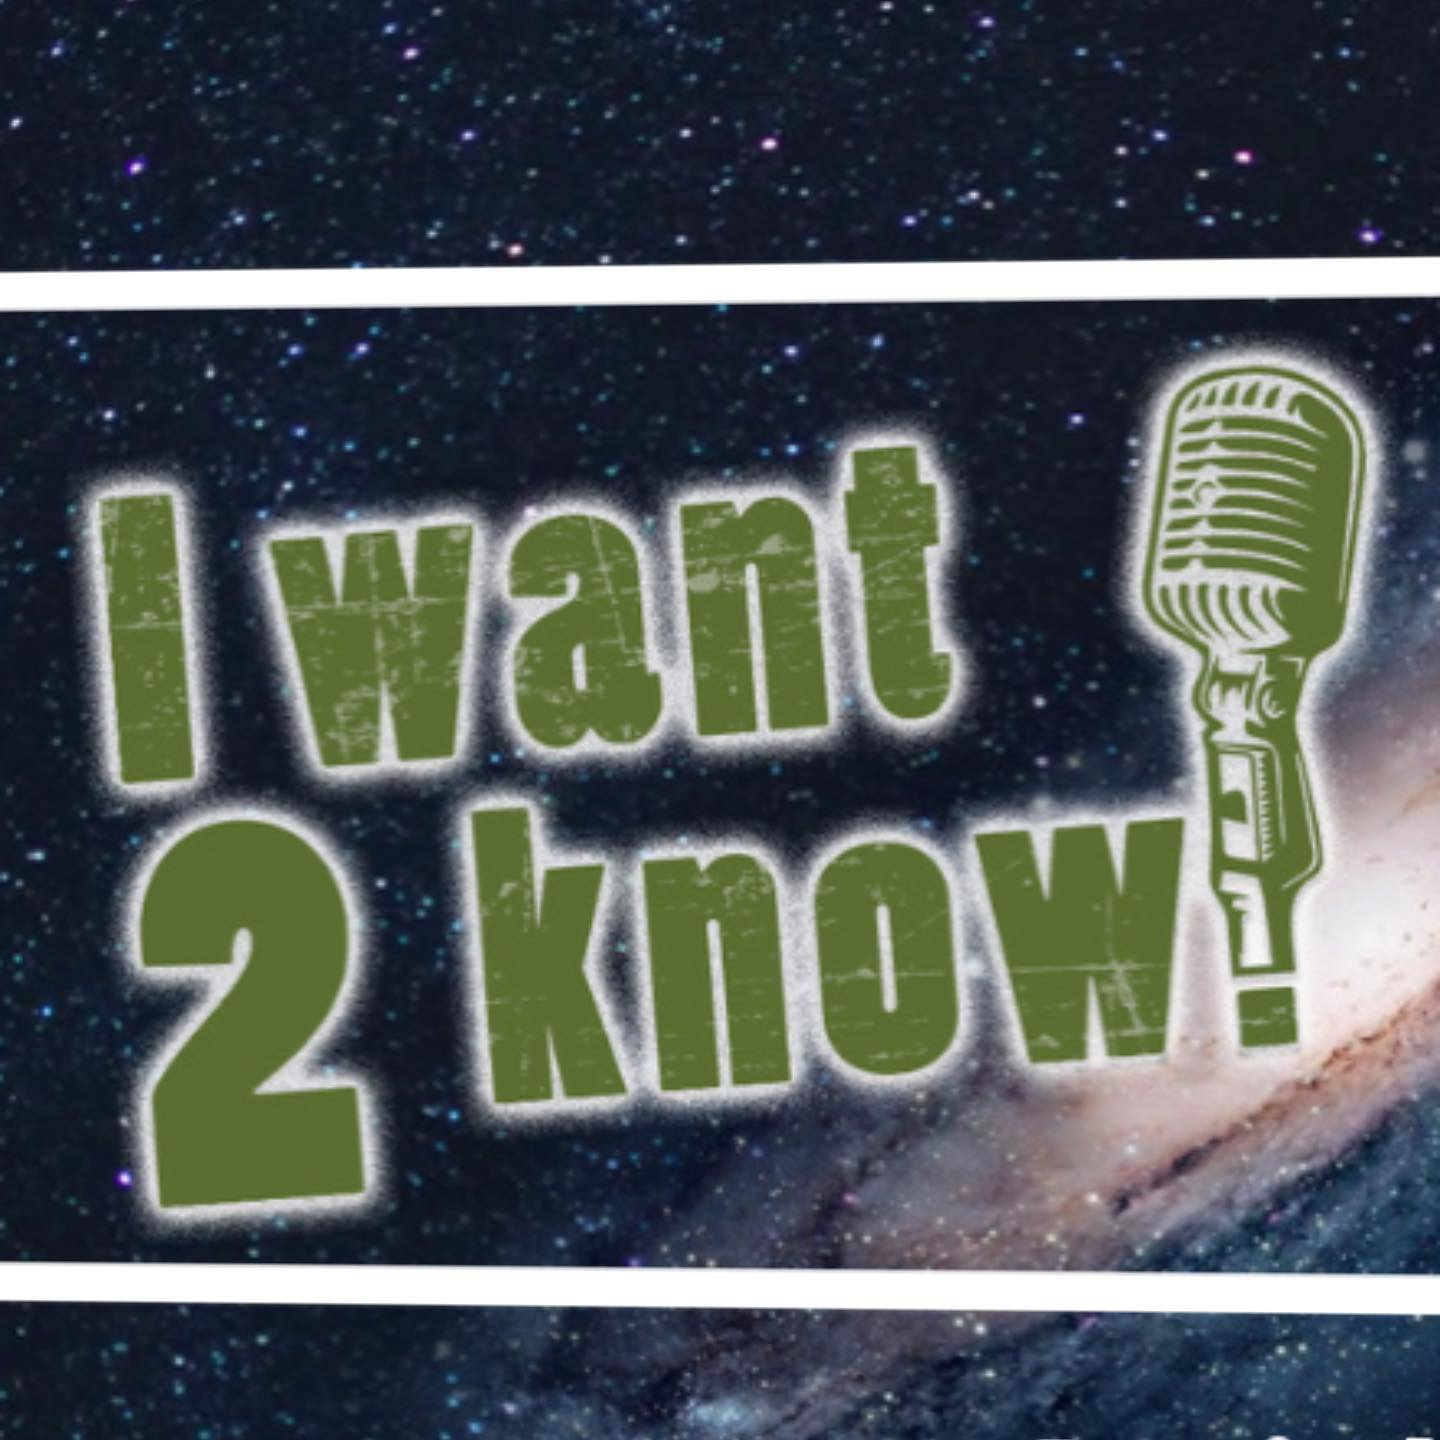 I Want 2 Know Podcast - Episode 62 - Listen on Anchor. | Listen on Apple Podcasts. Listen on YouTube.